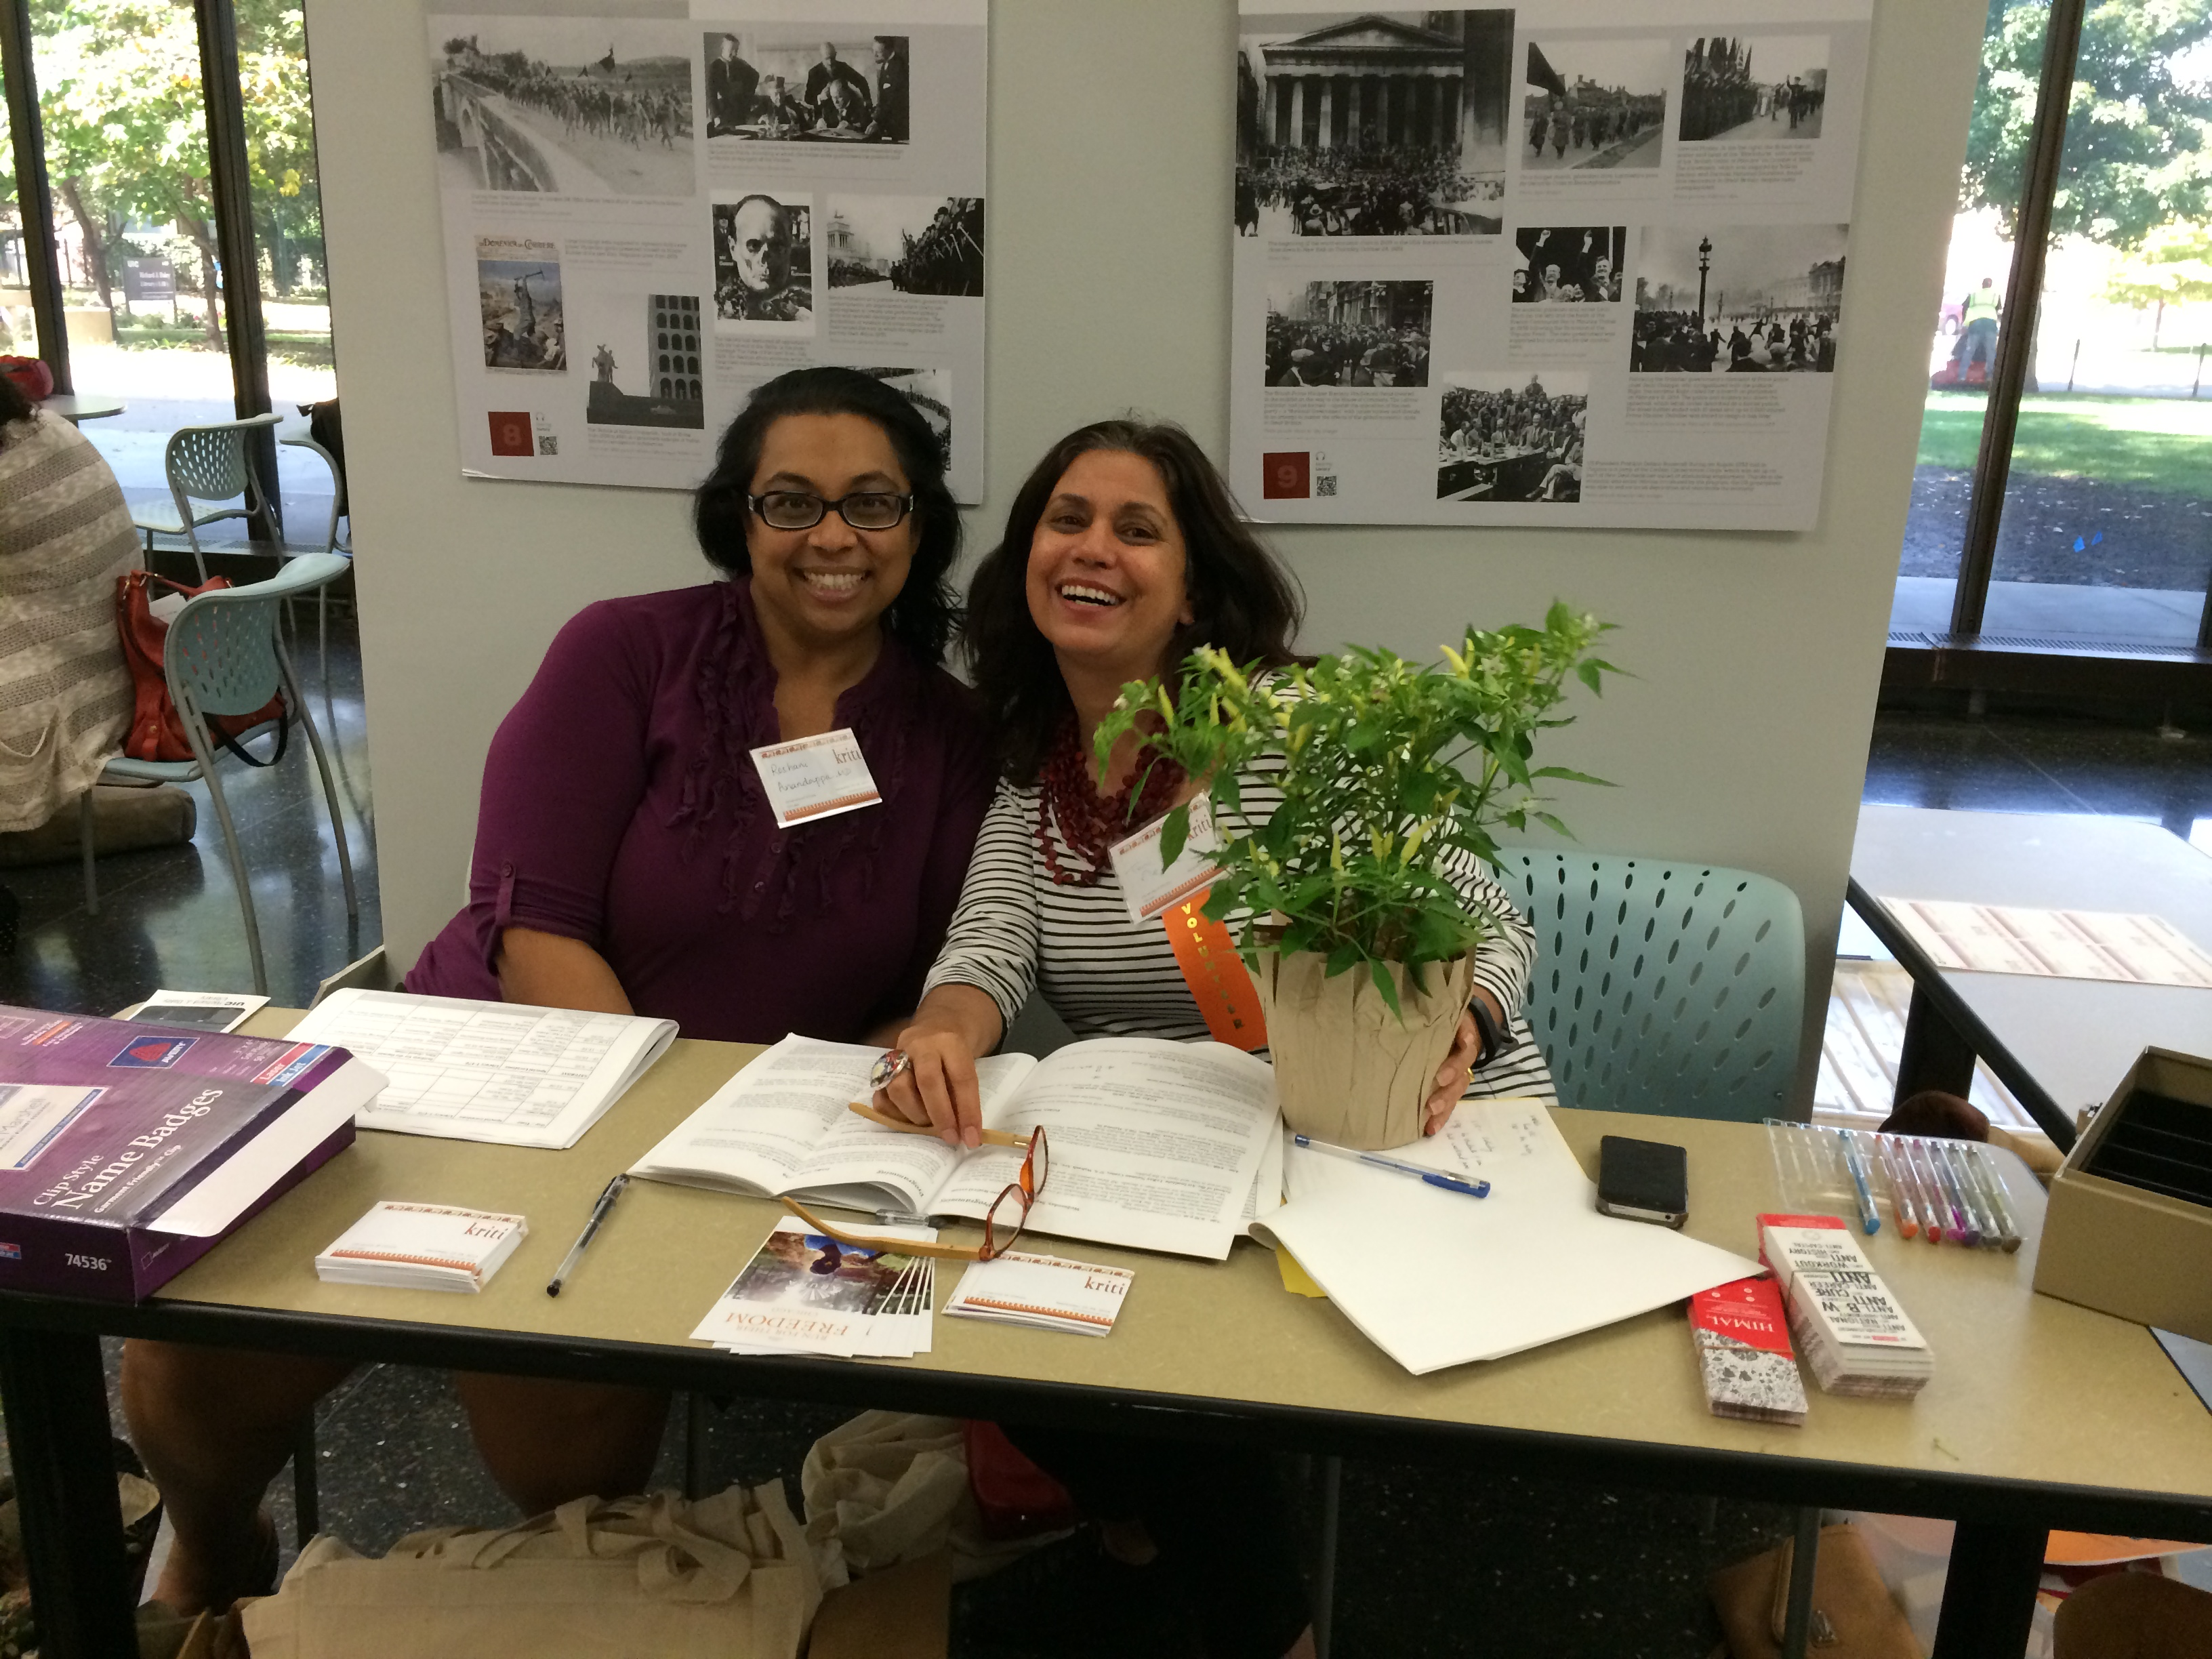 (left to right) Roshani Anandappa and Toni Nealie at the registration desk